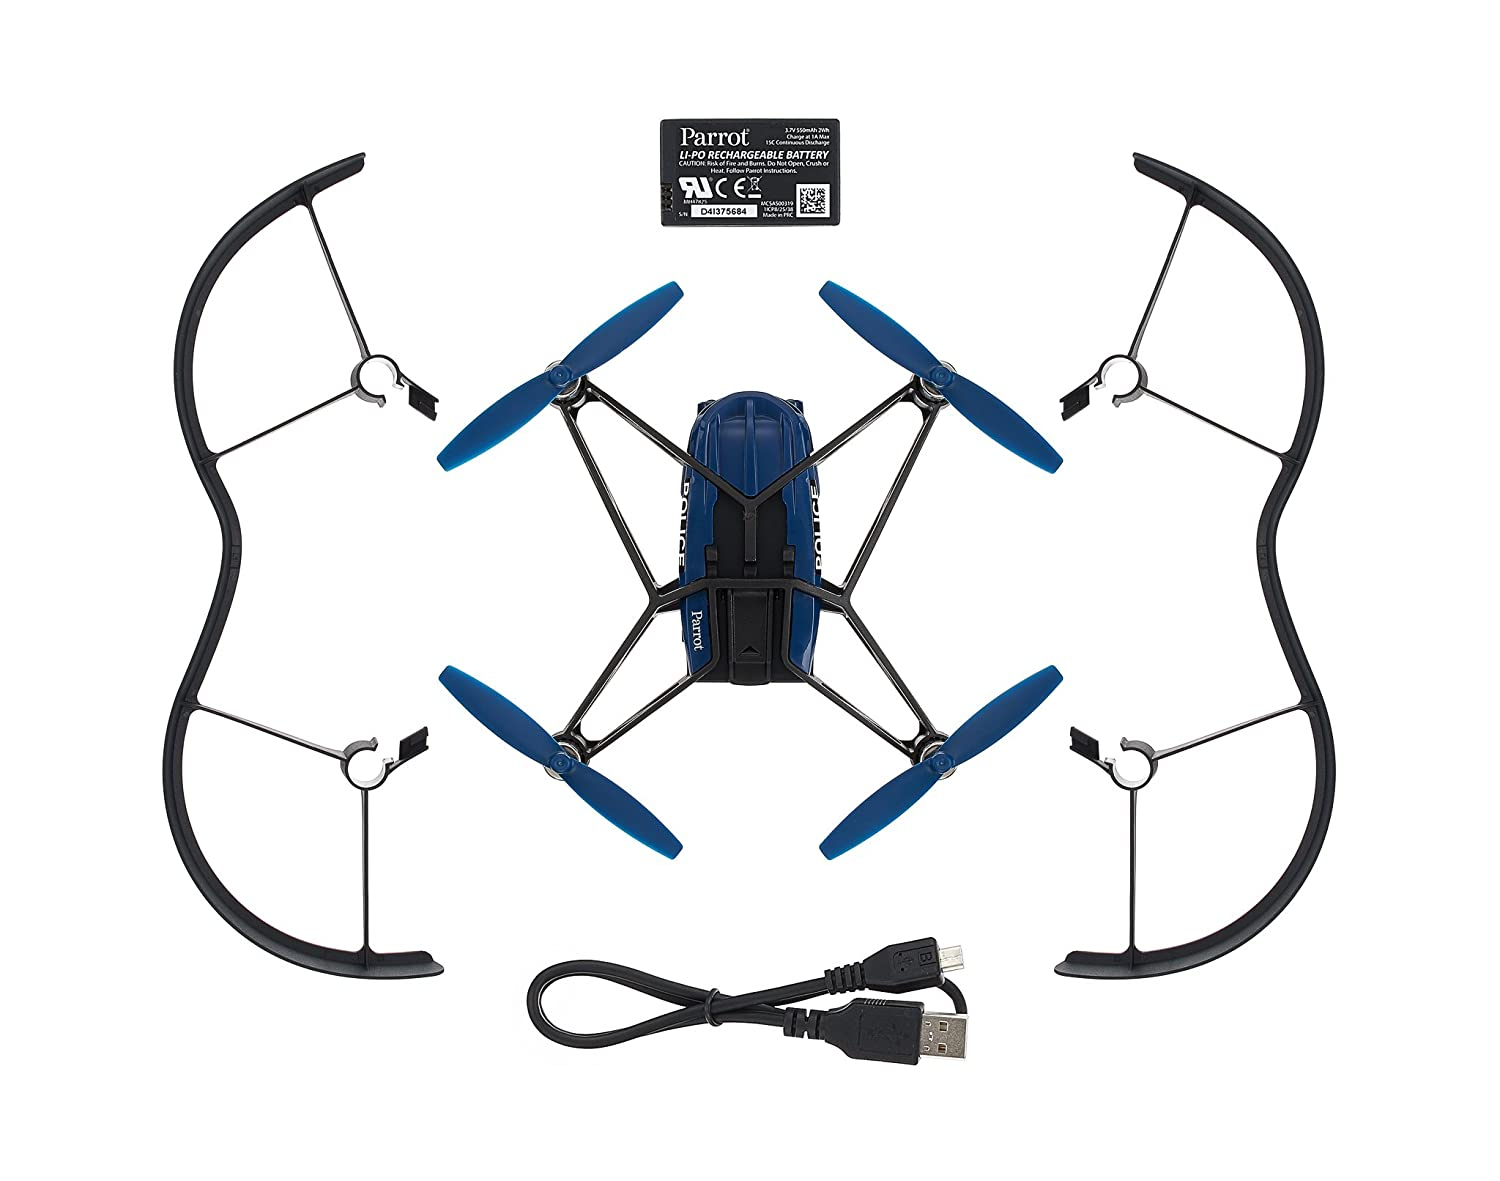 Parrot Airborne Night Minidrone Maclane Blue Diagram Page 1 Camera Photo